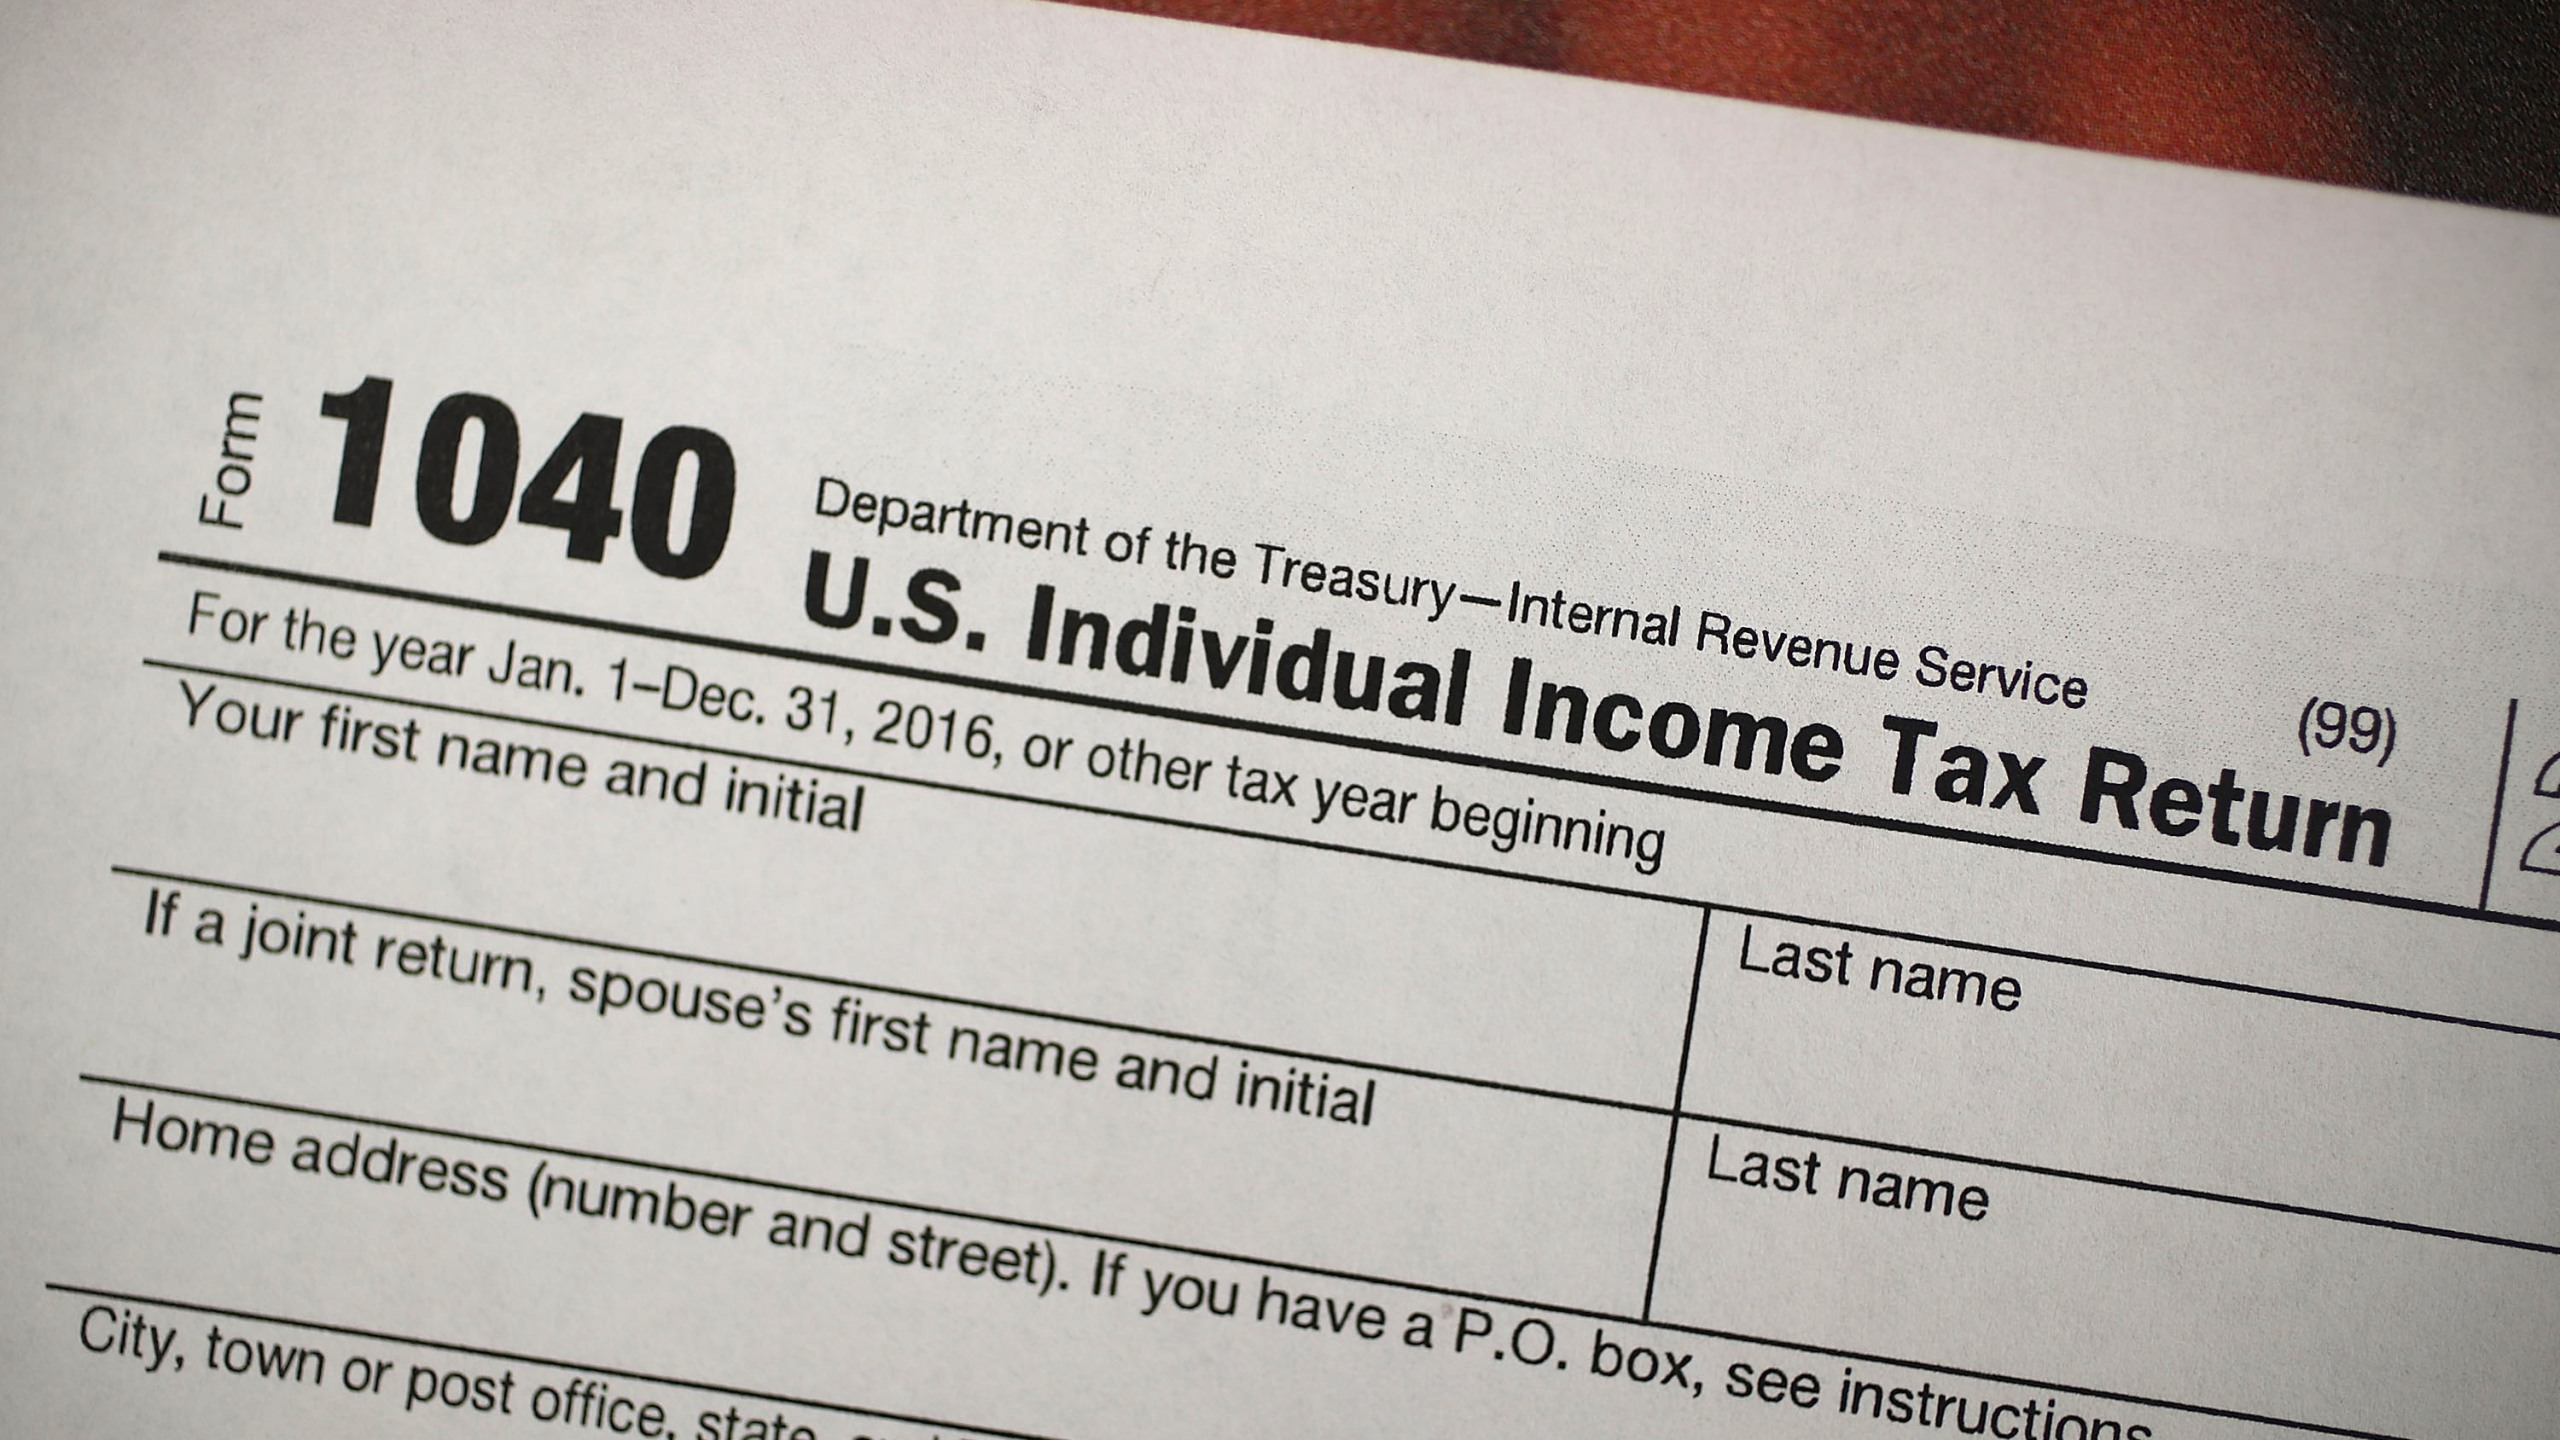 A copy of a IRS 1040 tax form is seen at an H&R Block office in this Dec. 22, 2017 photo. (Credit: Joe Raedle/Getty Images)